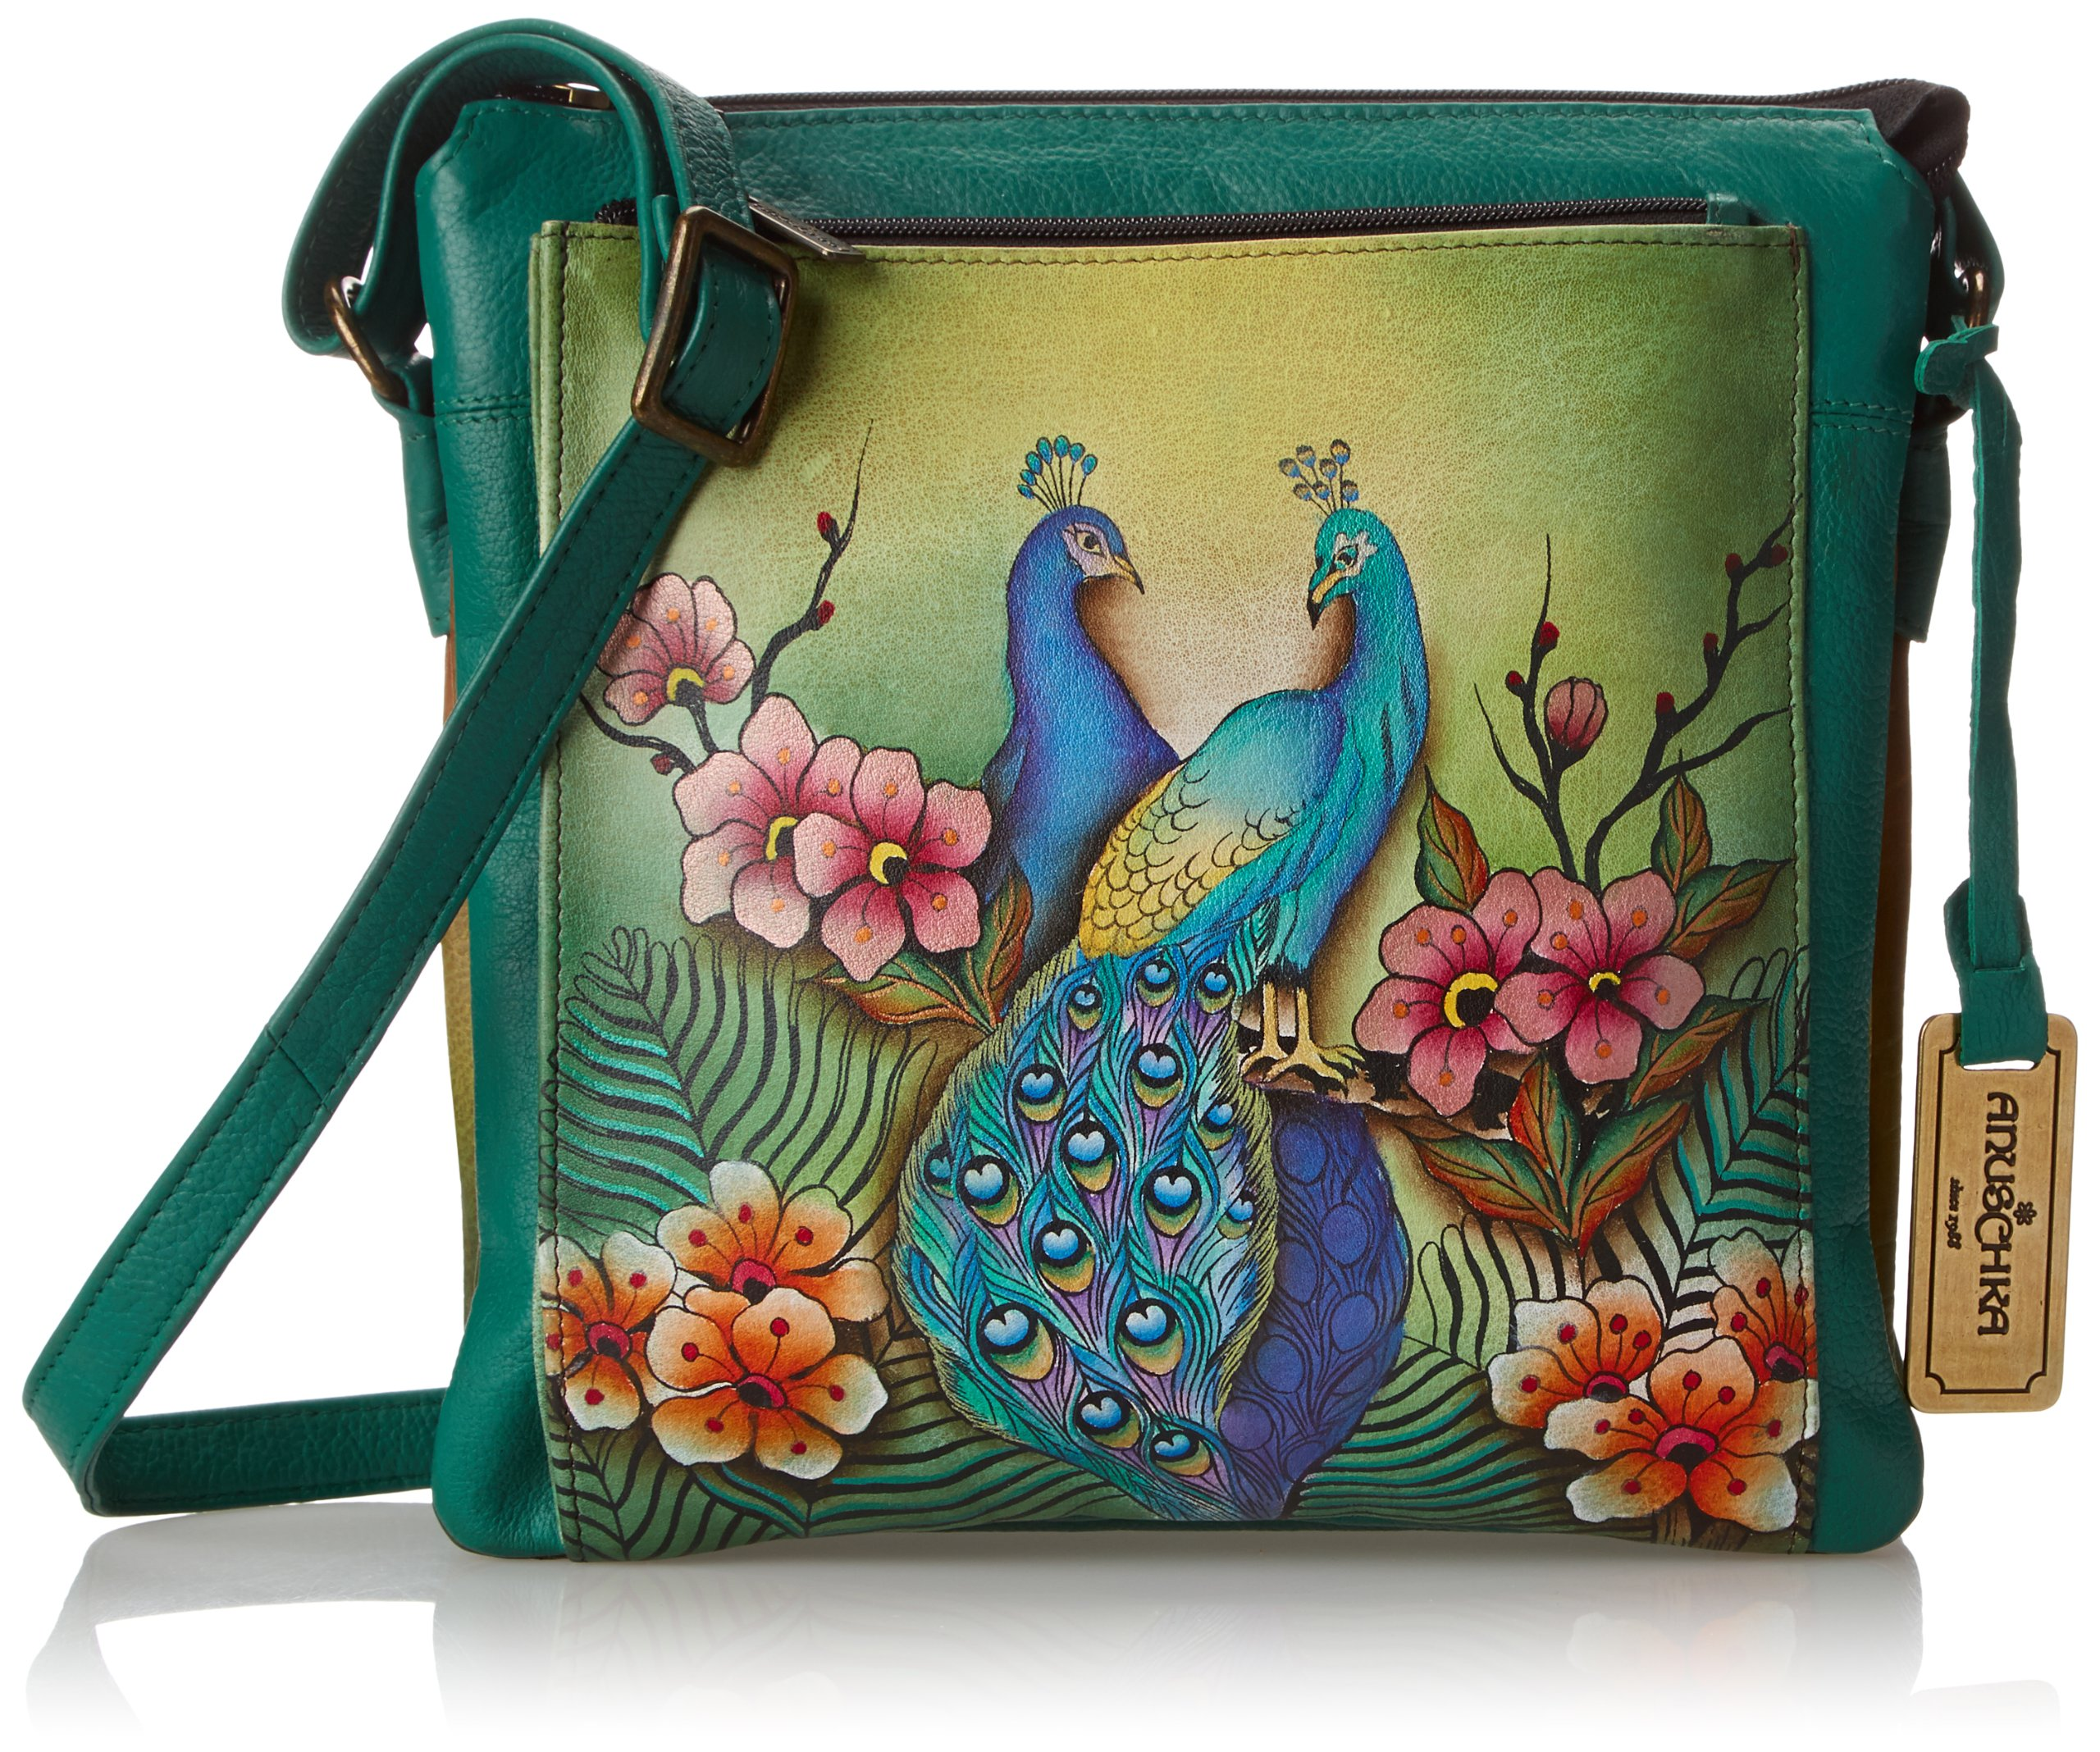 Anuschka 520 Shoulder Bag,Passionate Peacocks,One Size